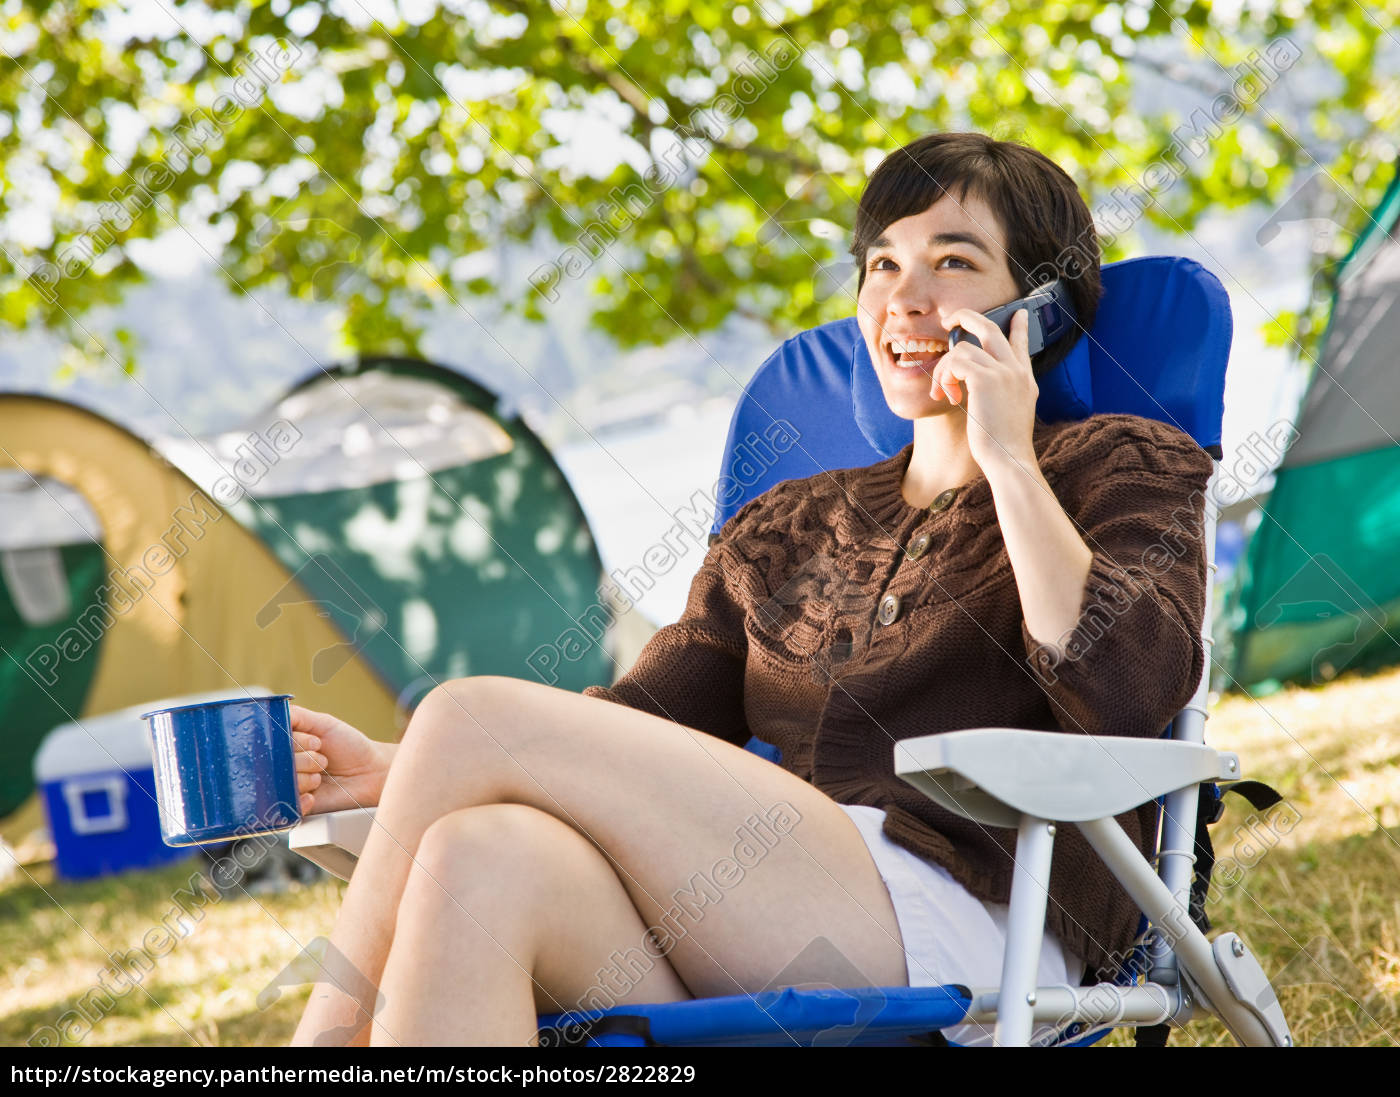 camper, talking, on, cell, phone - 2822829